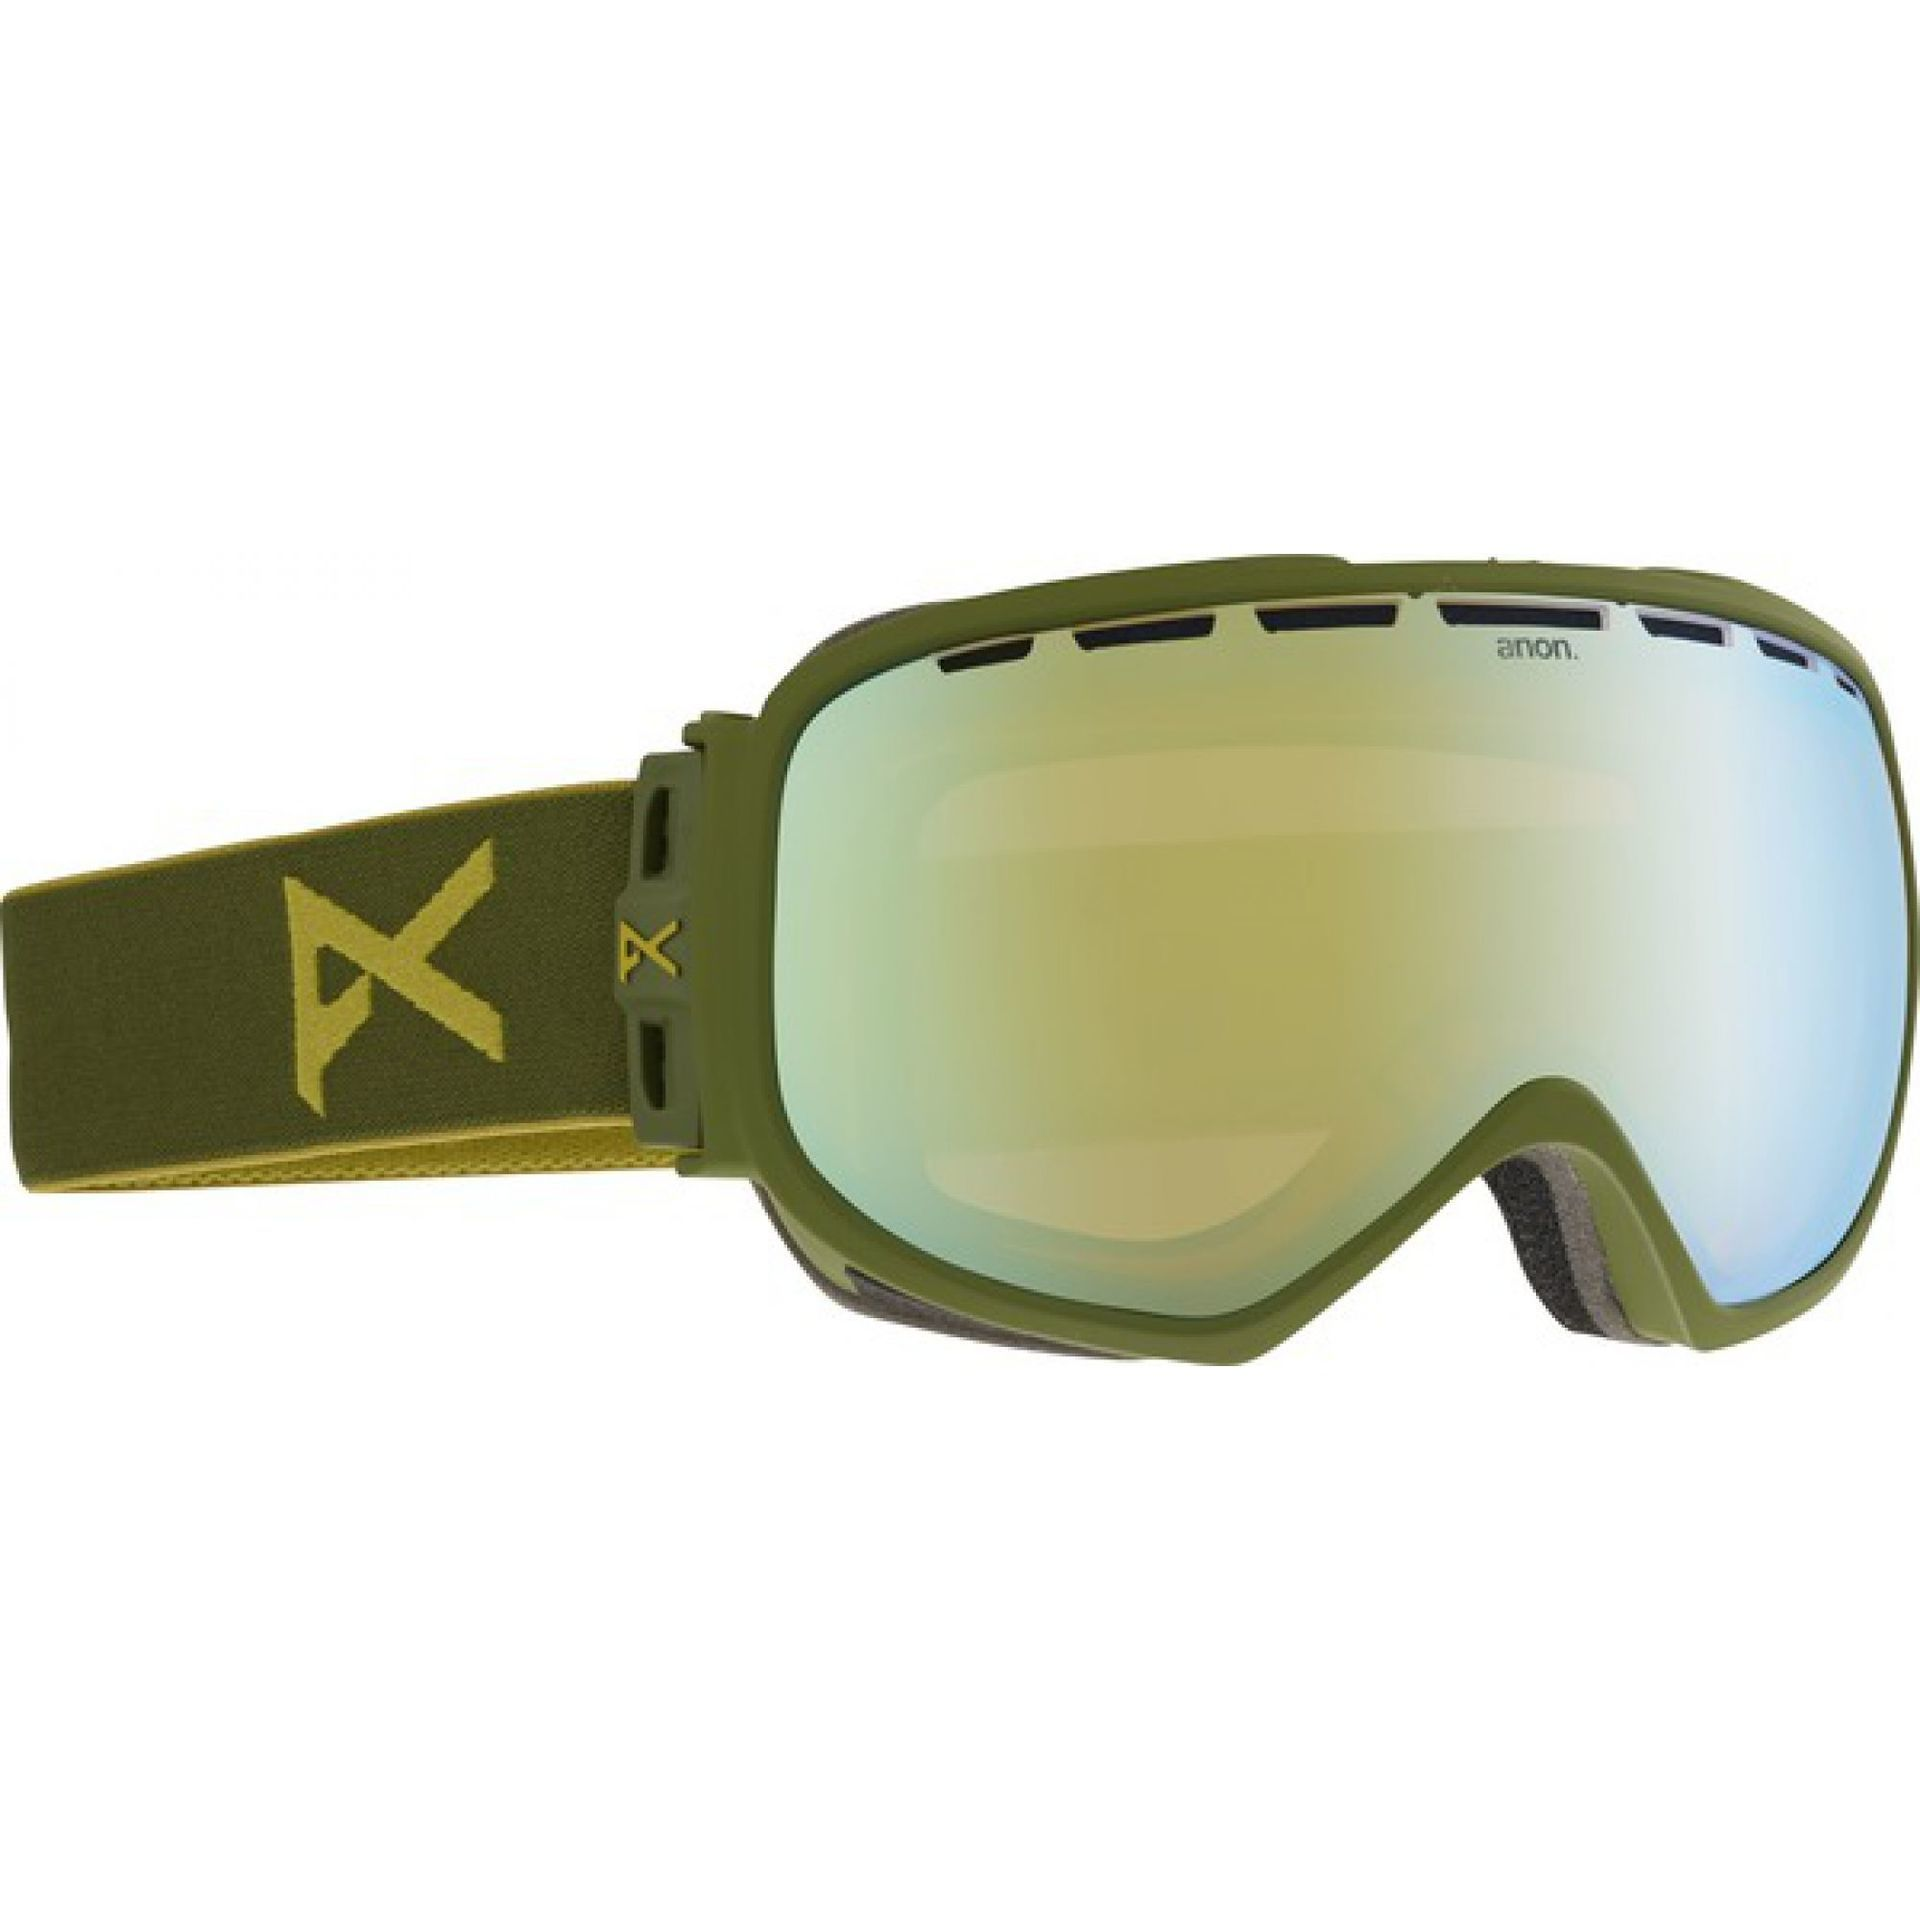 GOGLE ANON INSURGENT BOYSCOUT|GOLD CHROME